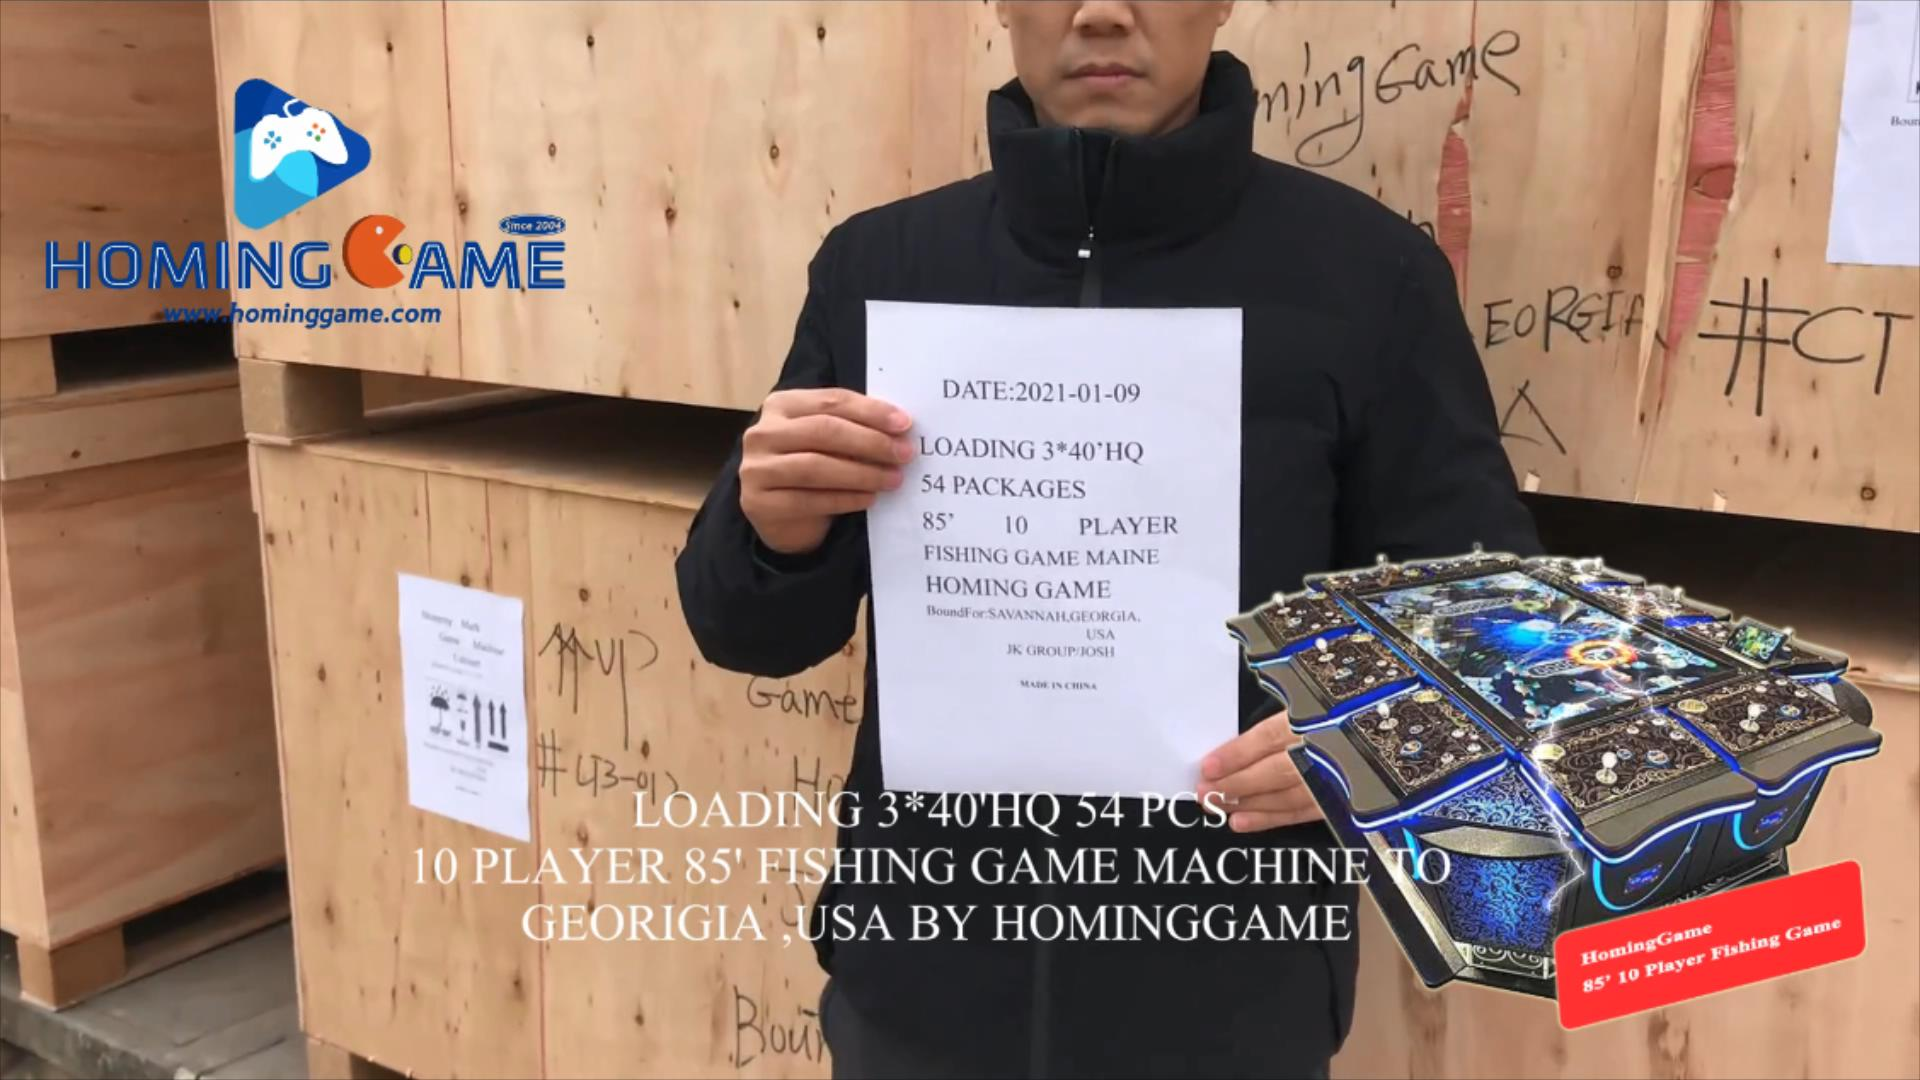 Fishing Game-Date 9th Jan 2021 Deliver 3 40'HQ Container total 54 pcs HomingGame Hot Sale 85' 10 player Fishing Table game machine to Georigia,USA(Order call whatsapp:+8618688409495 or Email:sales@...,